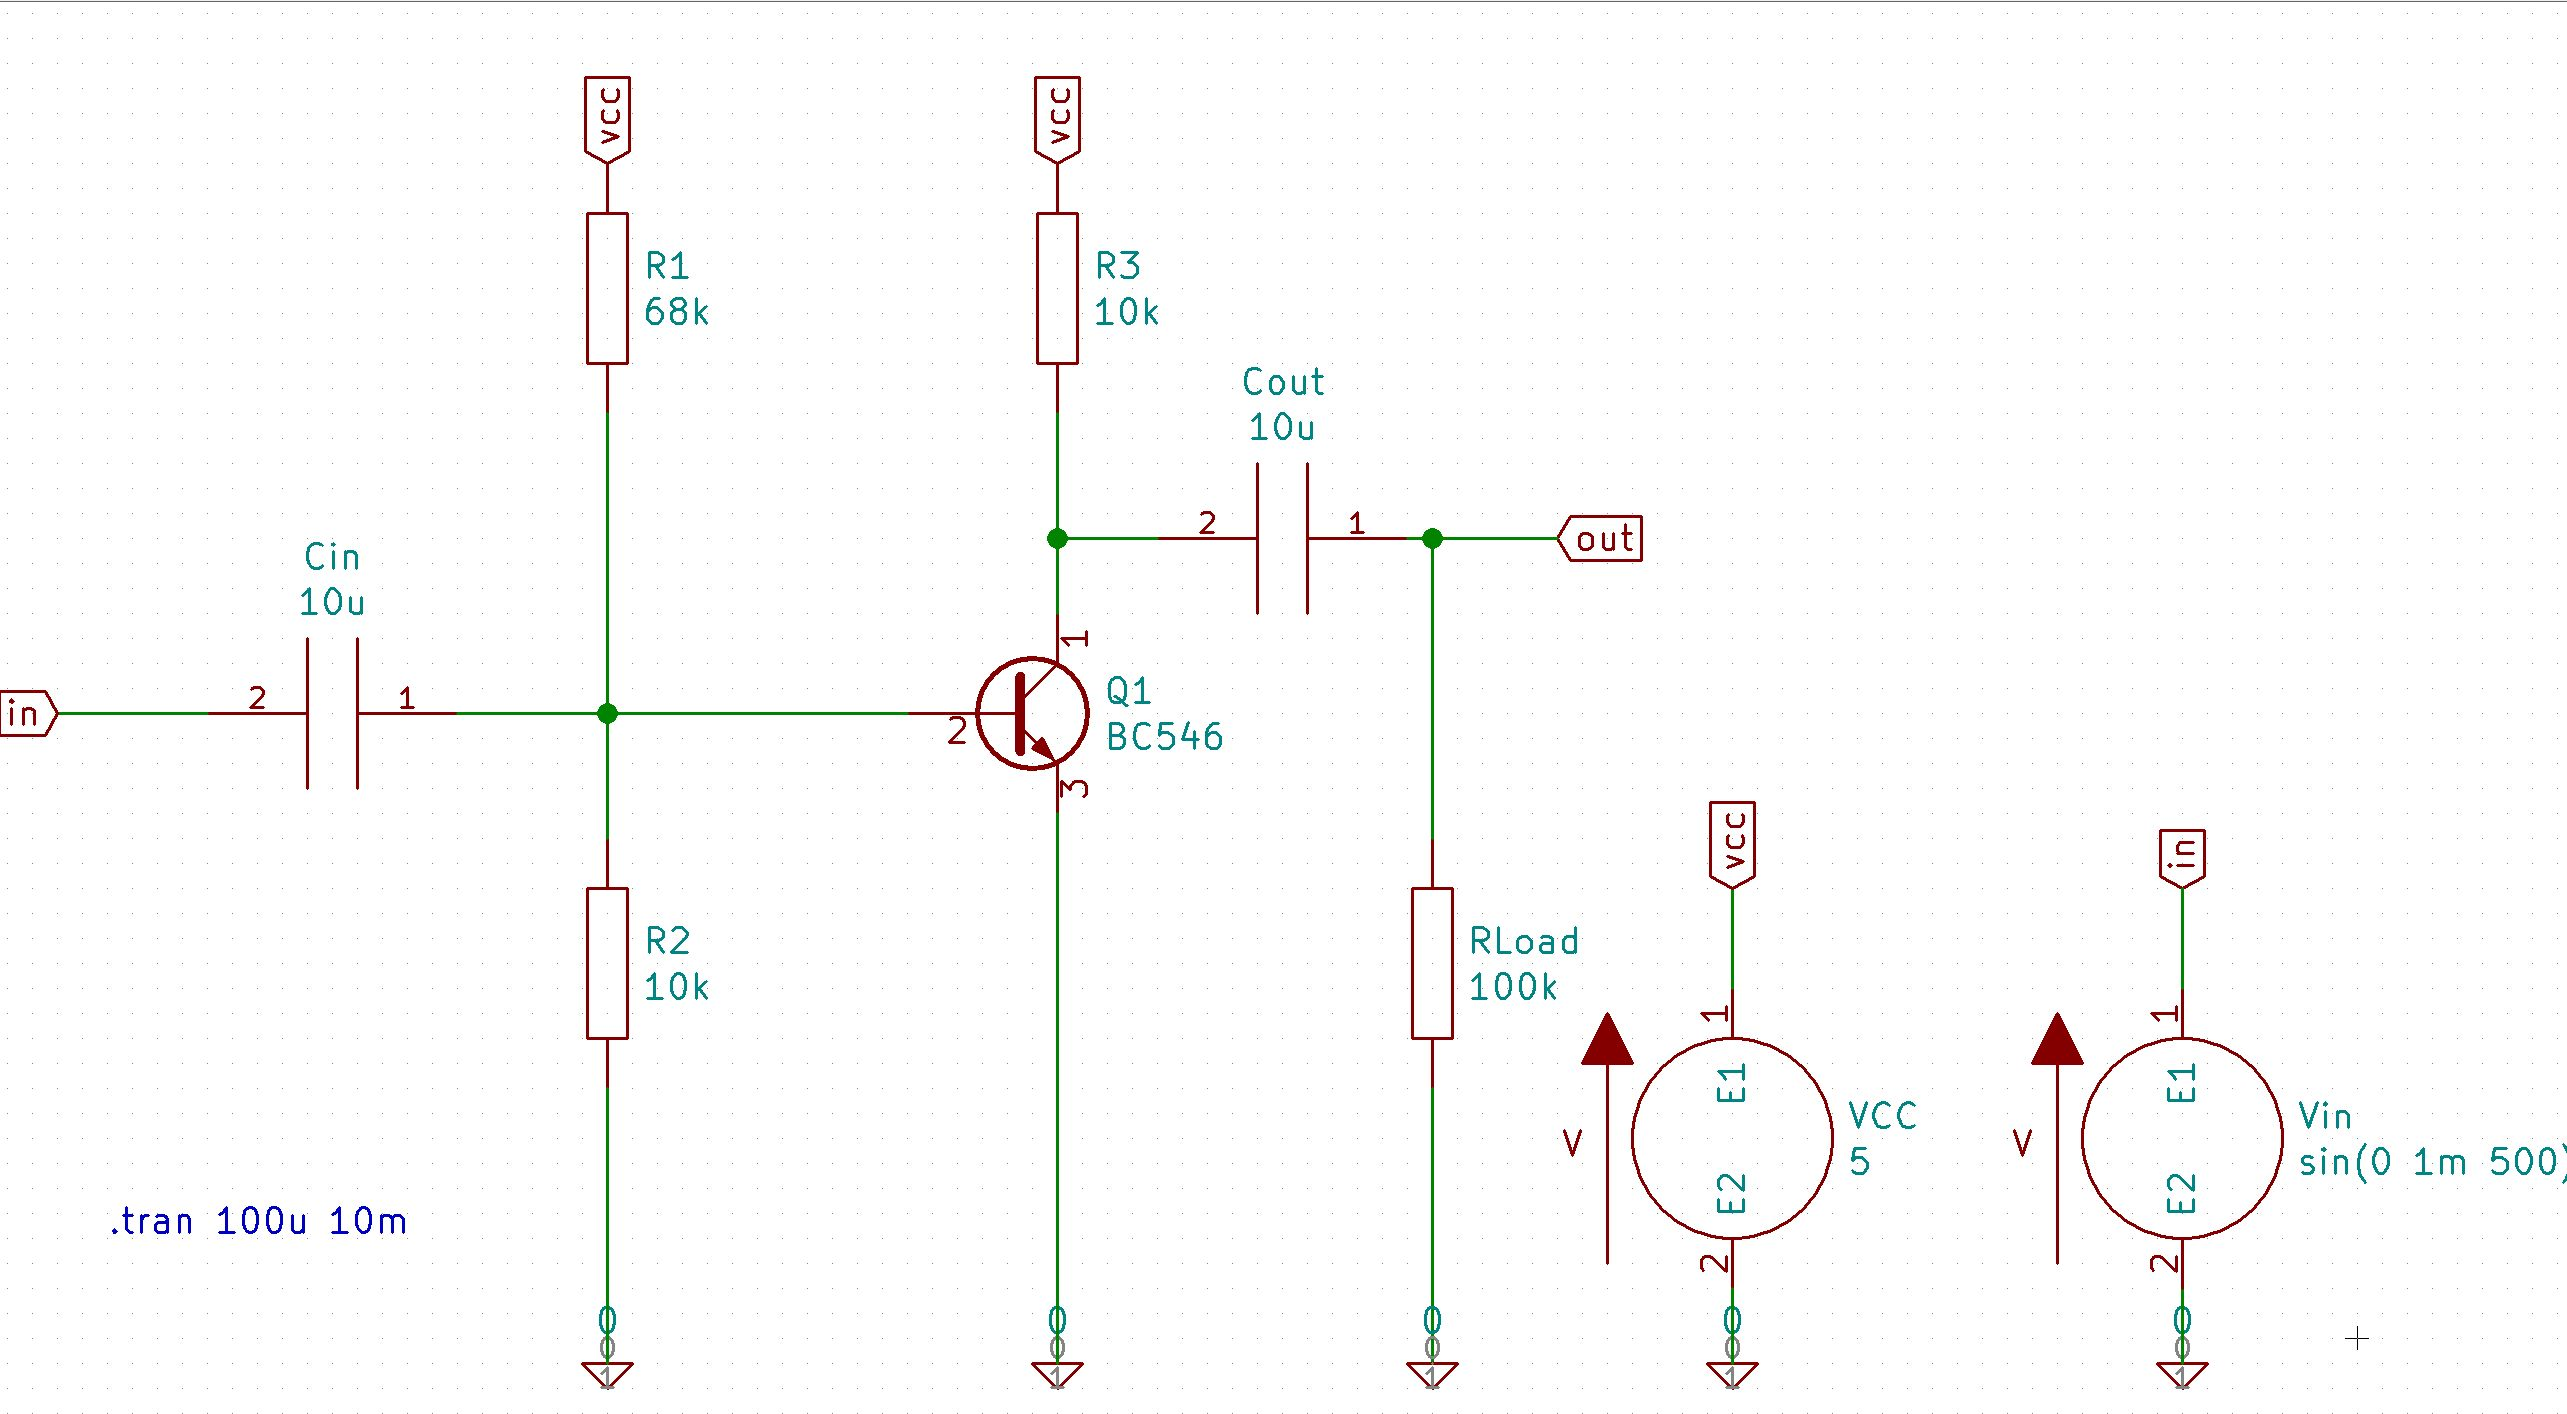 wiring diagram for amp and sub 99 f250 fuse box kicad eeschema as gui ngspice tutorial setting up the amplifier circuit